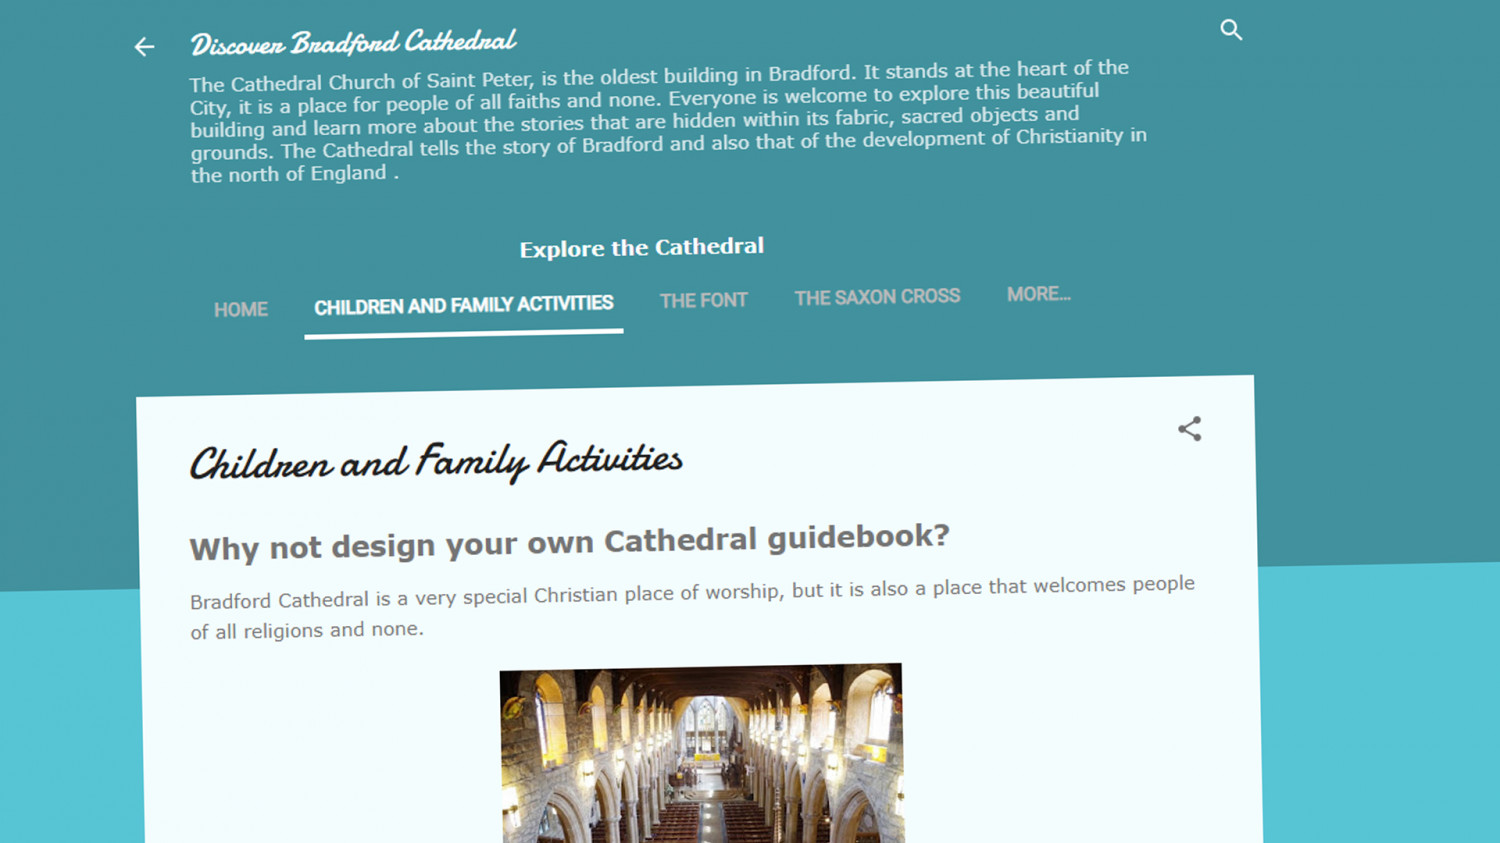 Discover Bradford Cathedral Blog.